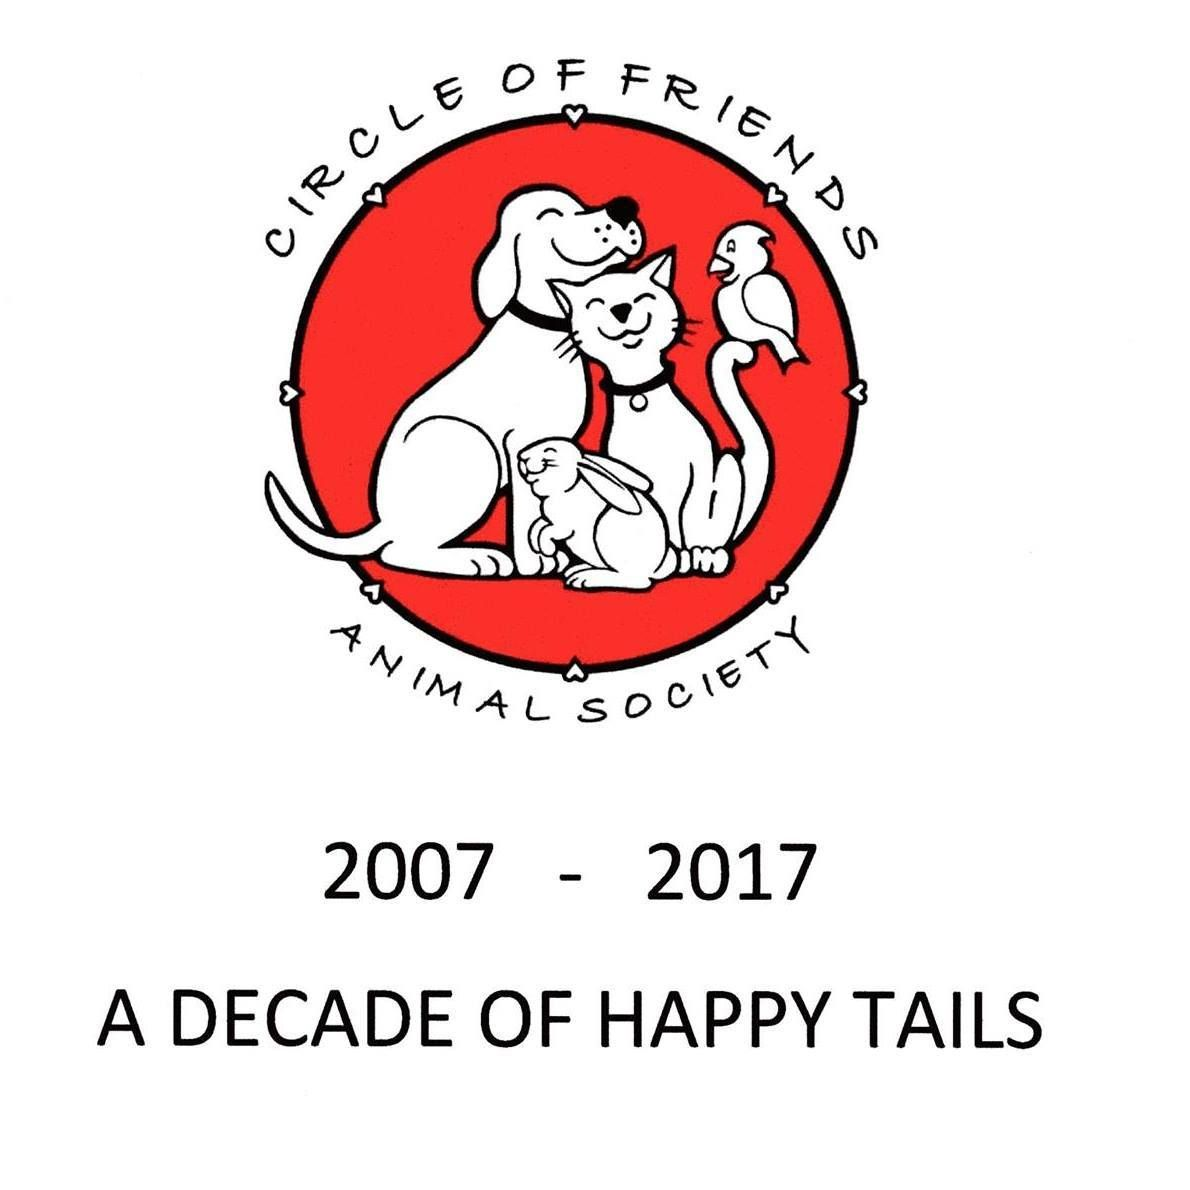 Get to know Circle of Friends Animal Society Inc. Animal